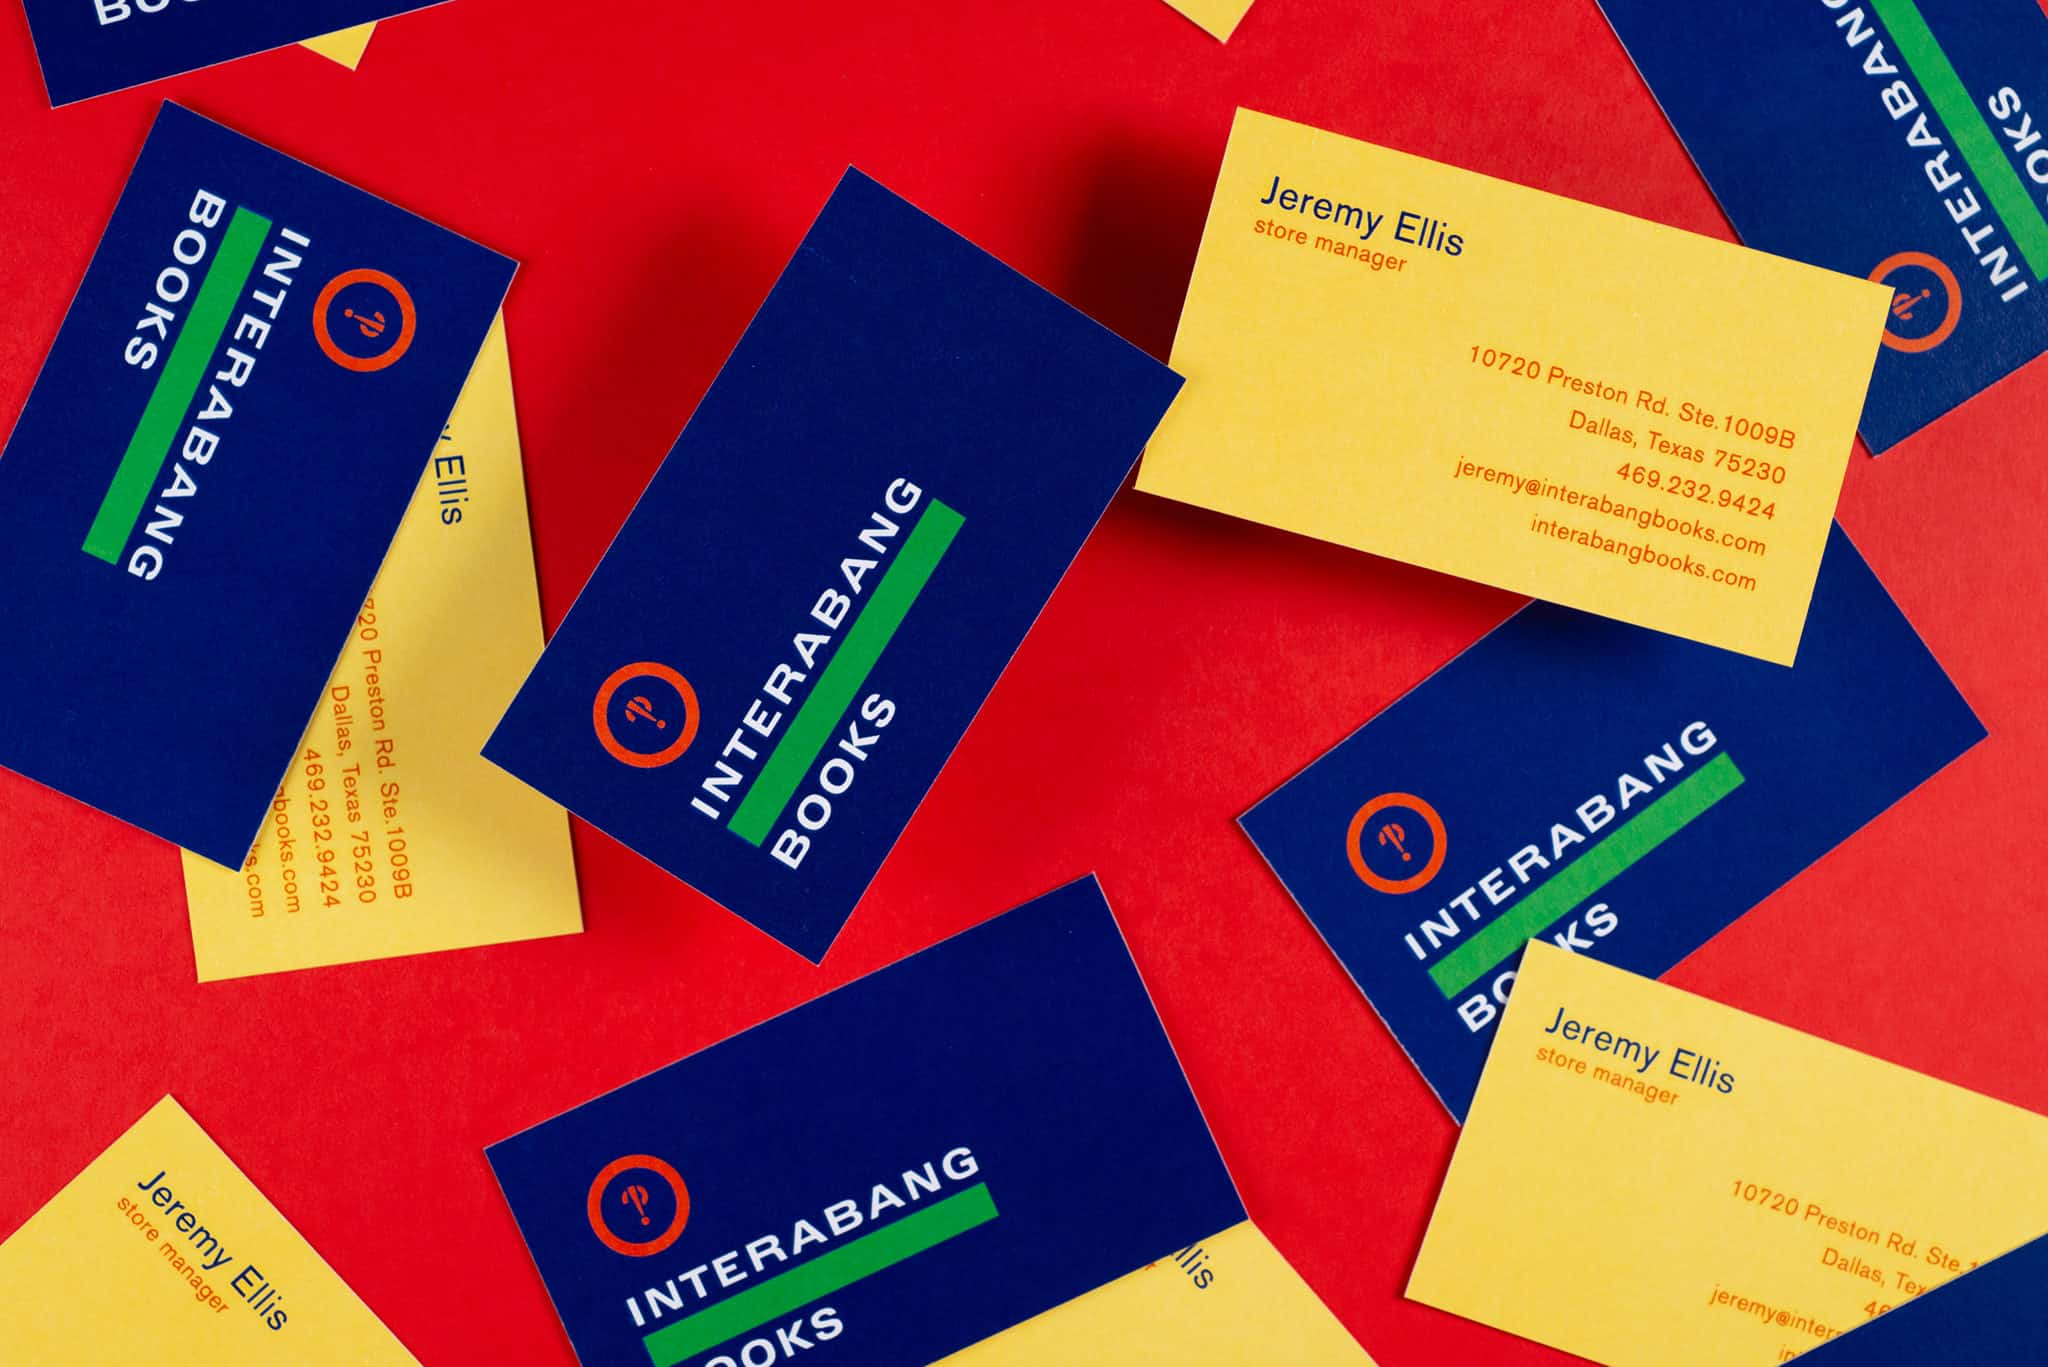 Stationery and business cards for Interabang Books, Dallas | Designed by Field of Study: A branding and graphic design consultancy | Houston TX | Jennifer Blanco & John Earles